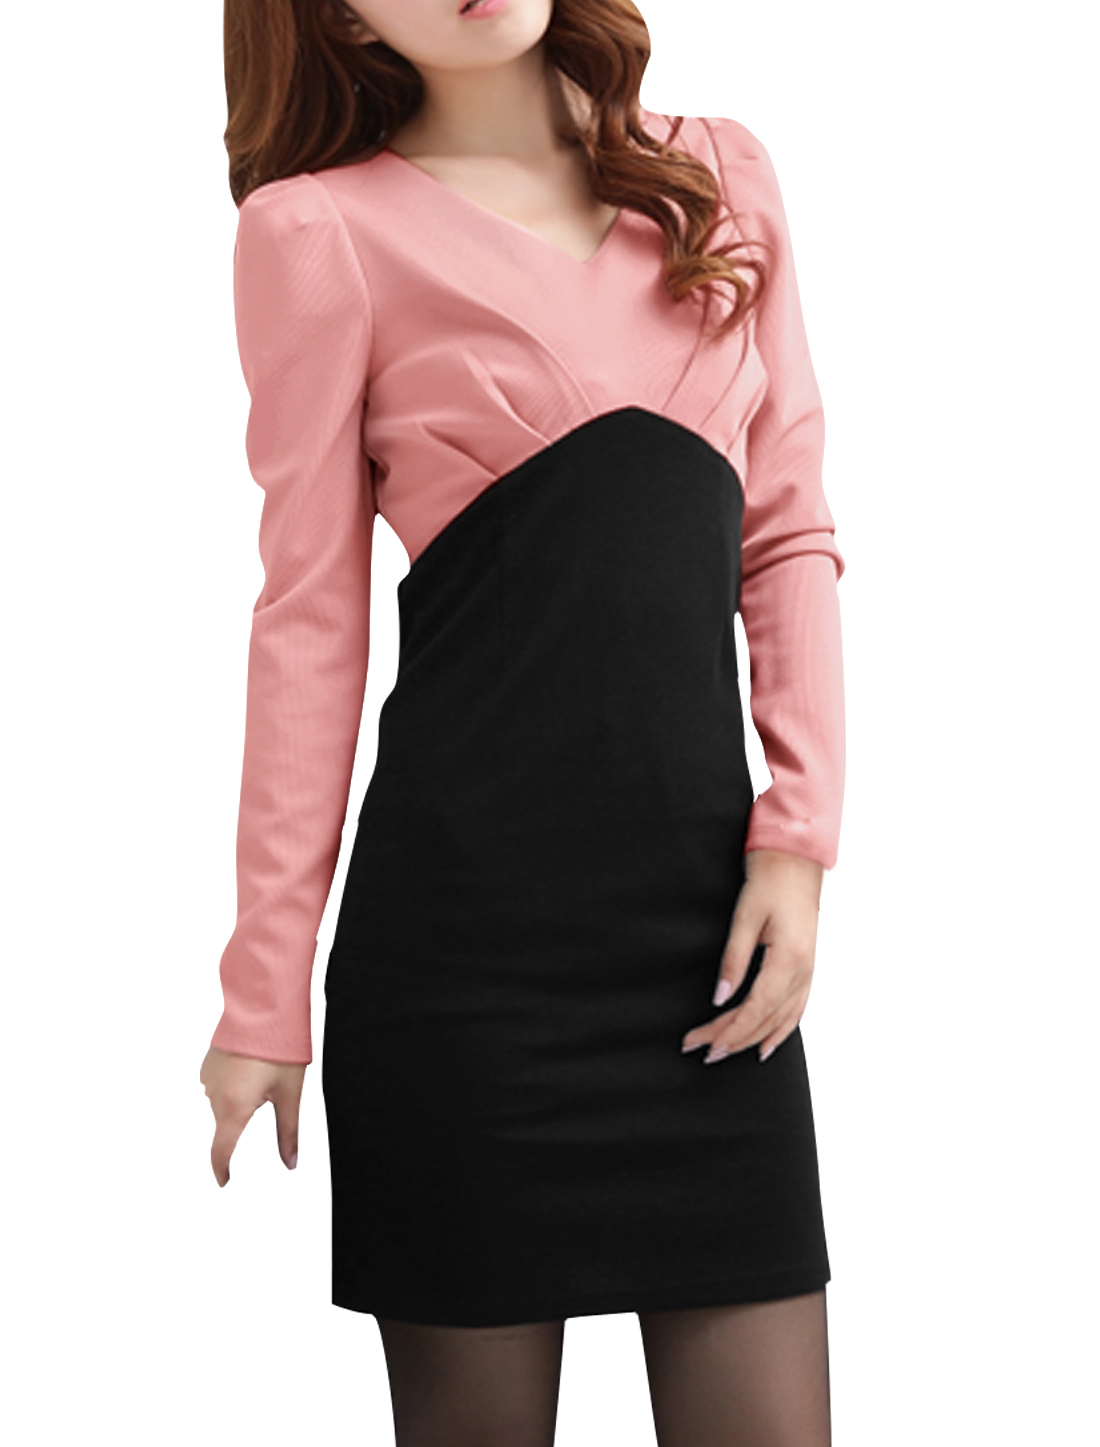 Ladies Pink Black V Neck Long Sleeve Elegant Above Knee Dress XS